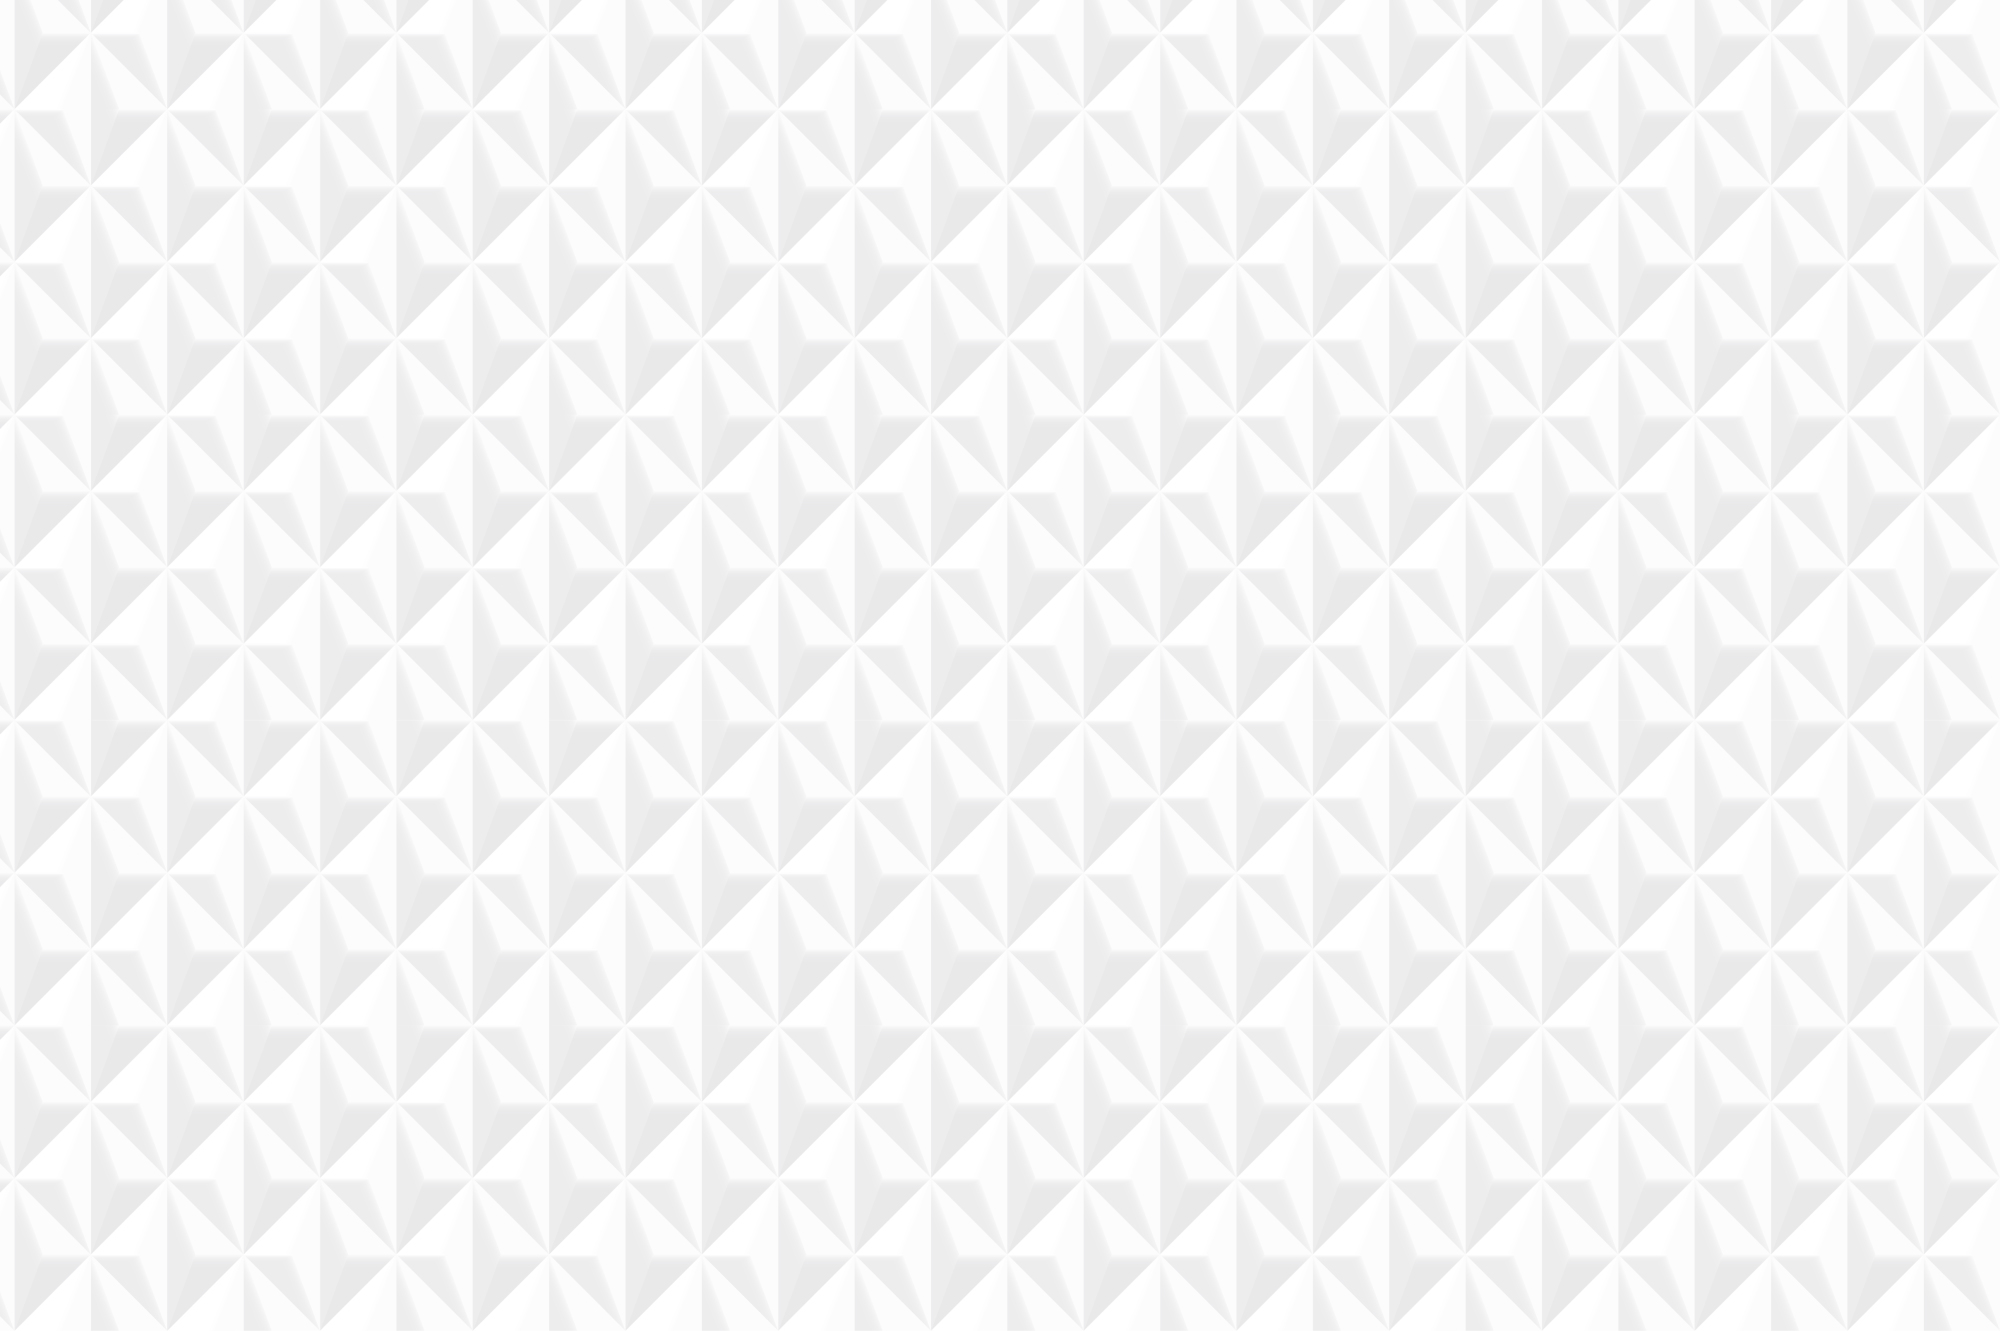 Seamless White 3d Textures. Swatches example image 2